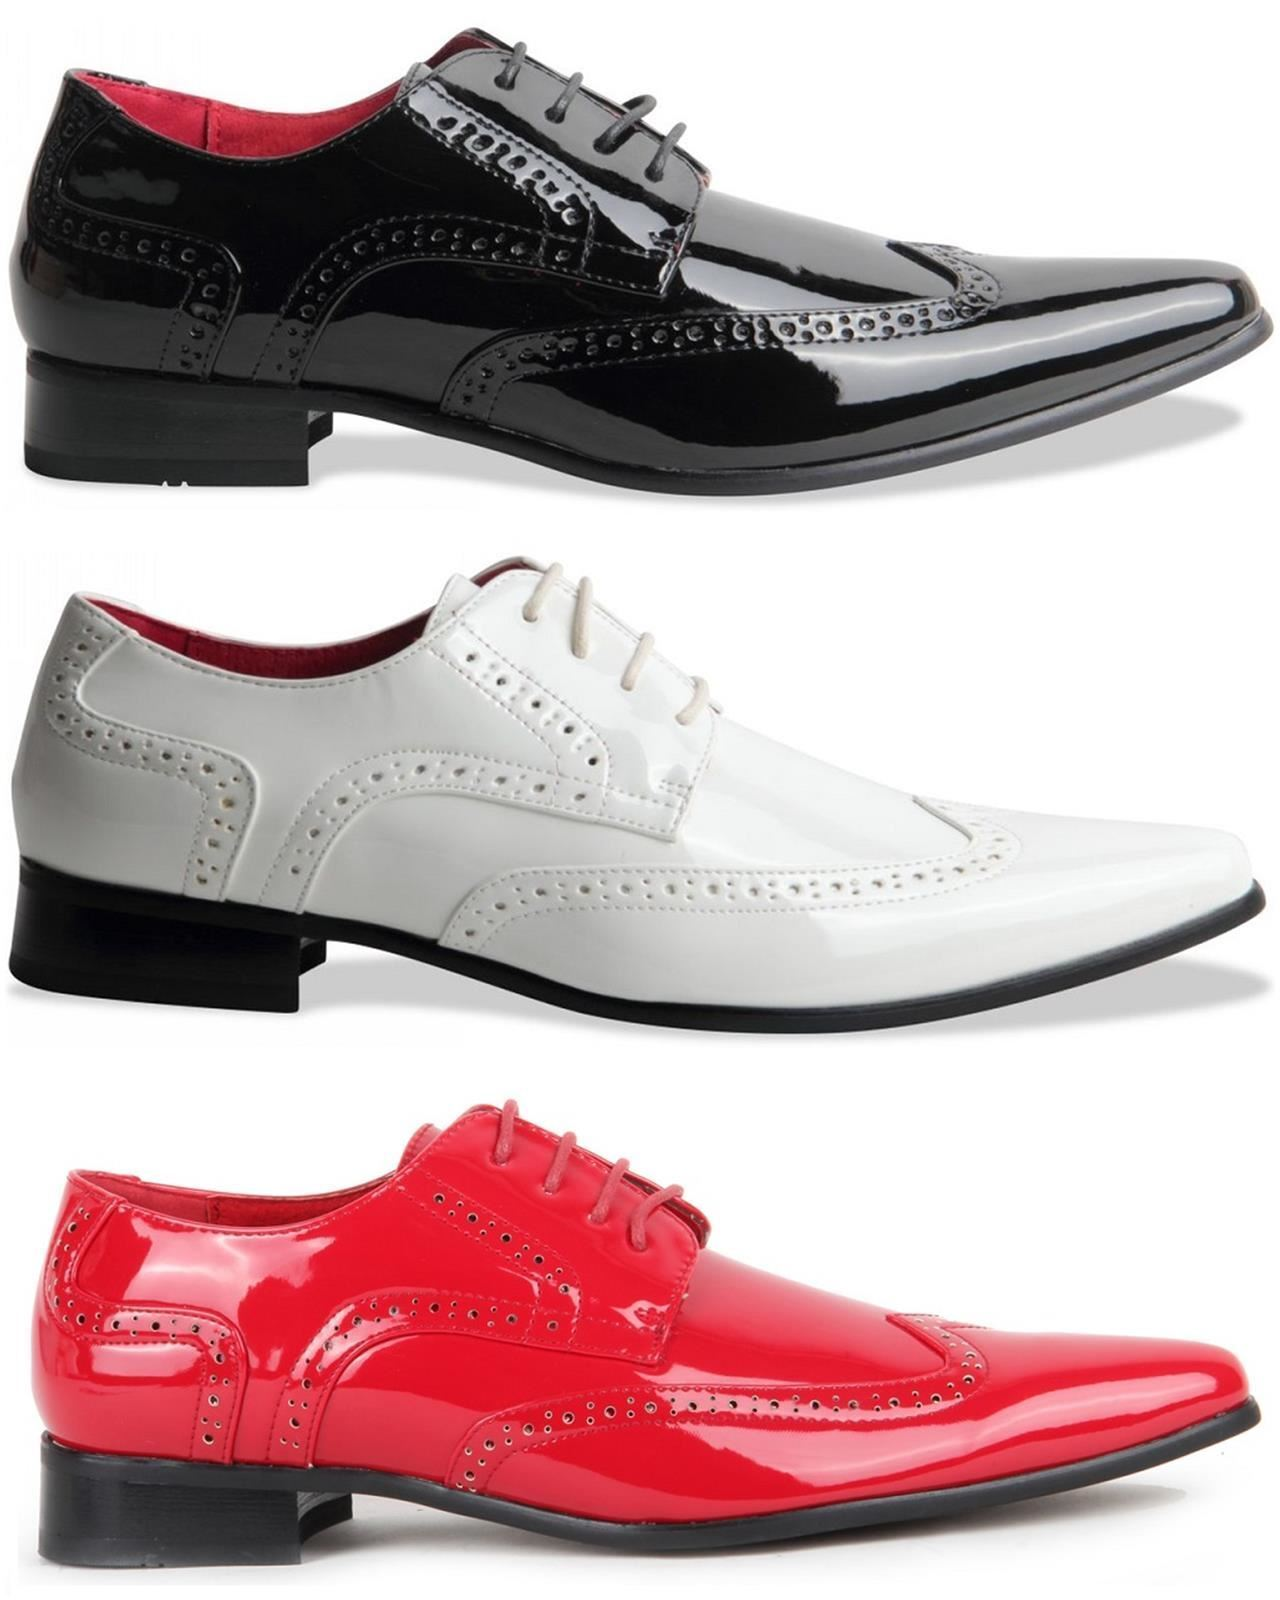 Mens Smart Lace Up Pointed Toe Brogue Formal Patent Leather Lined shoes